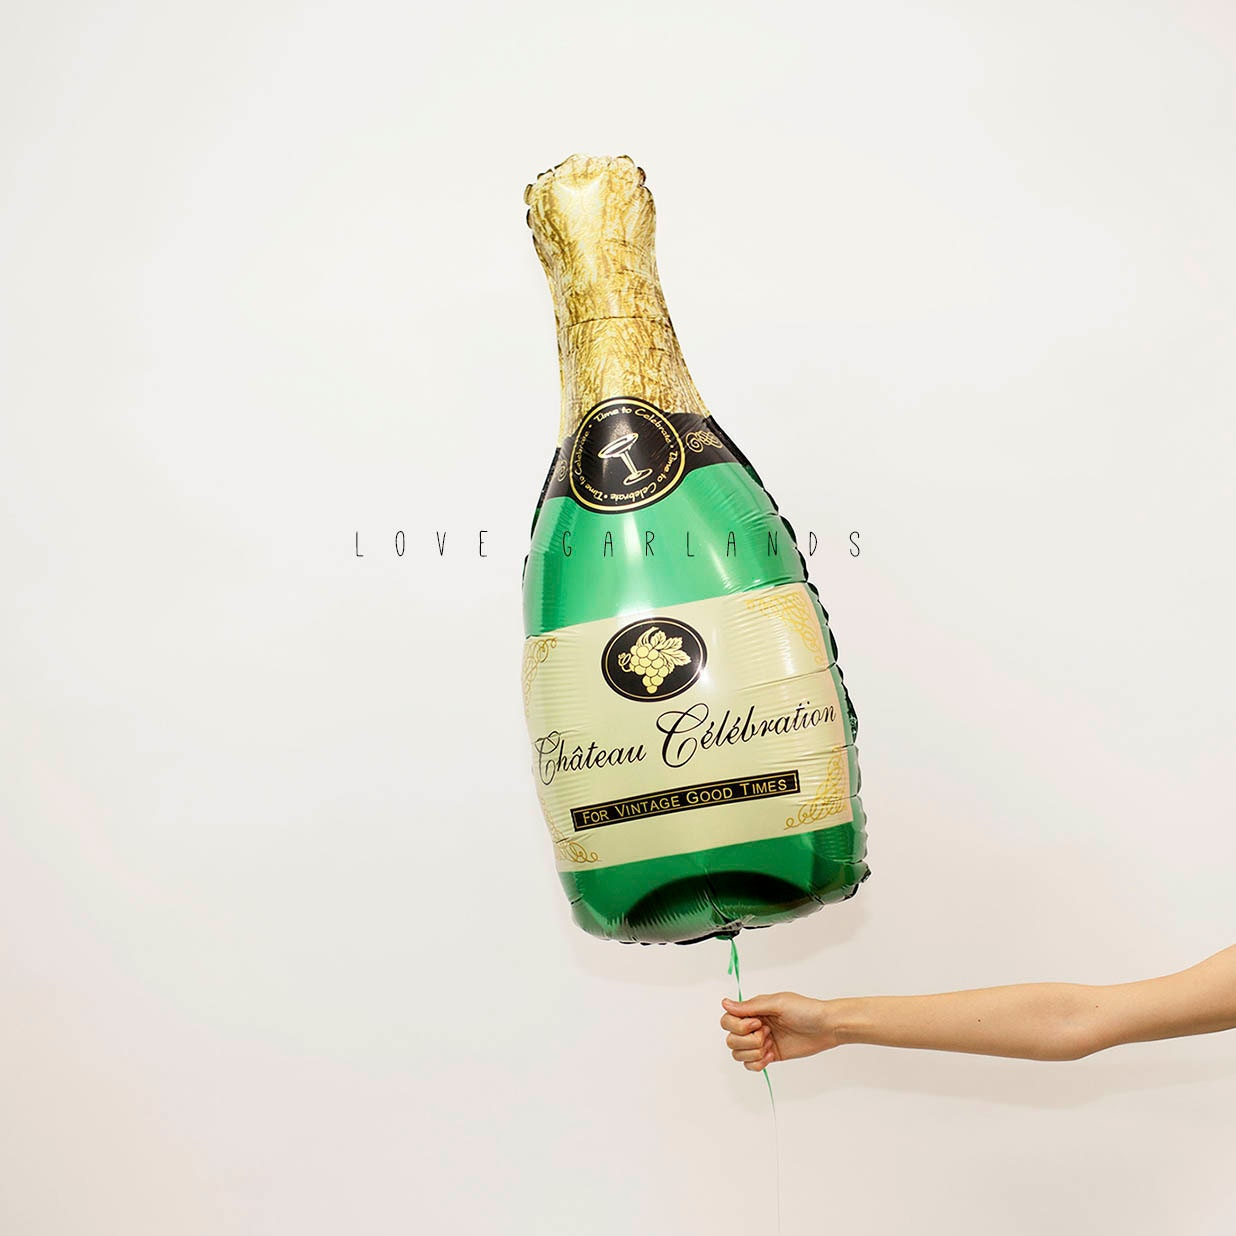 36 Champagne Bottle Balloon Champagne Balloon Alcohol